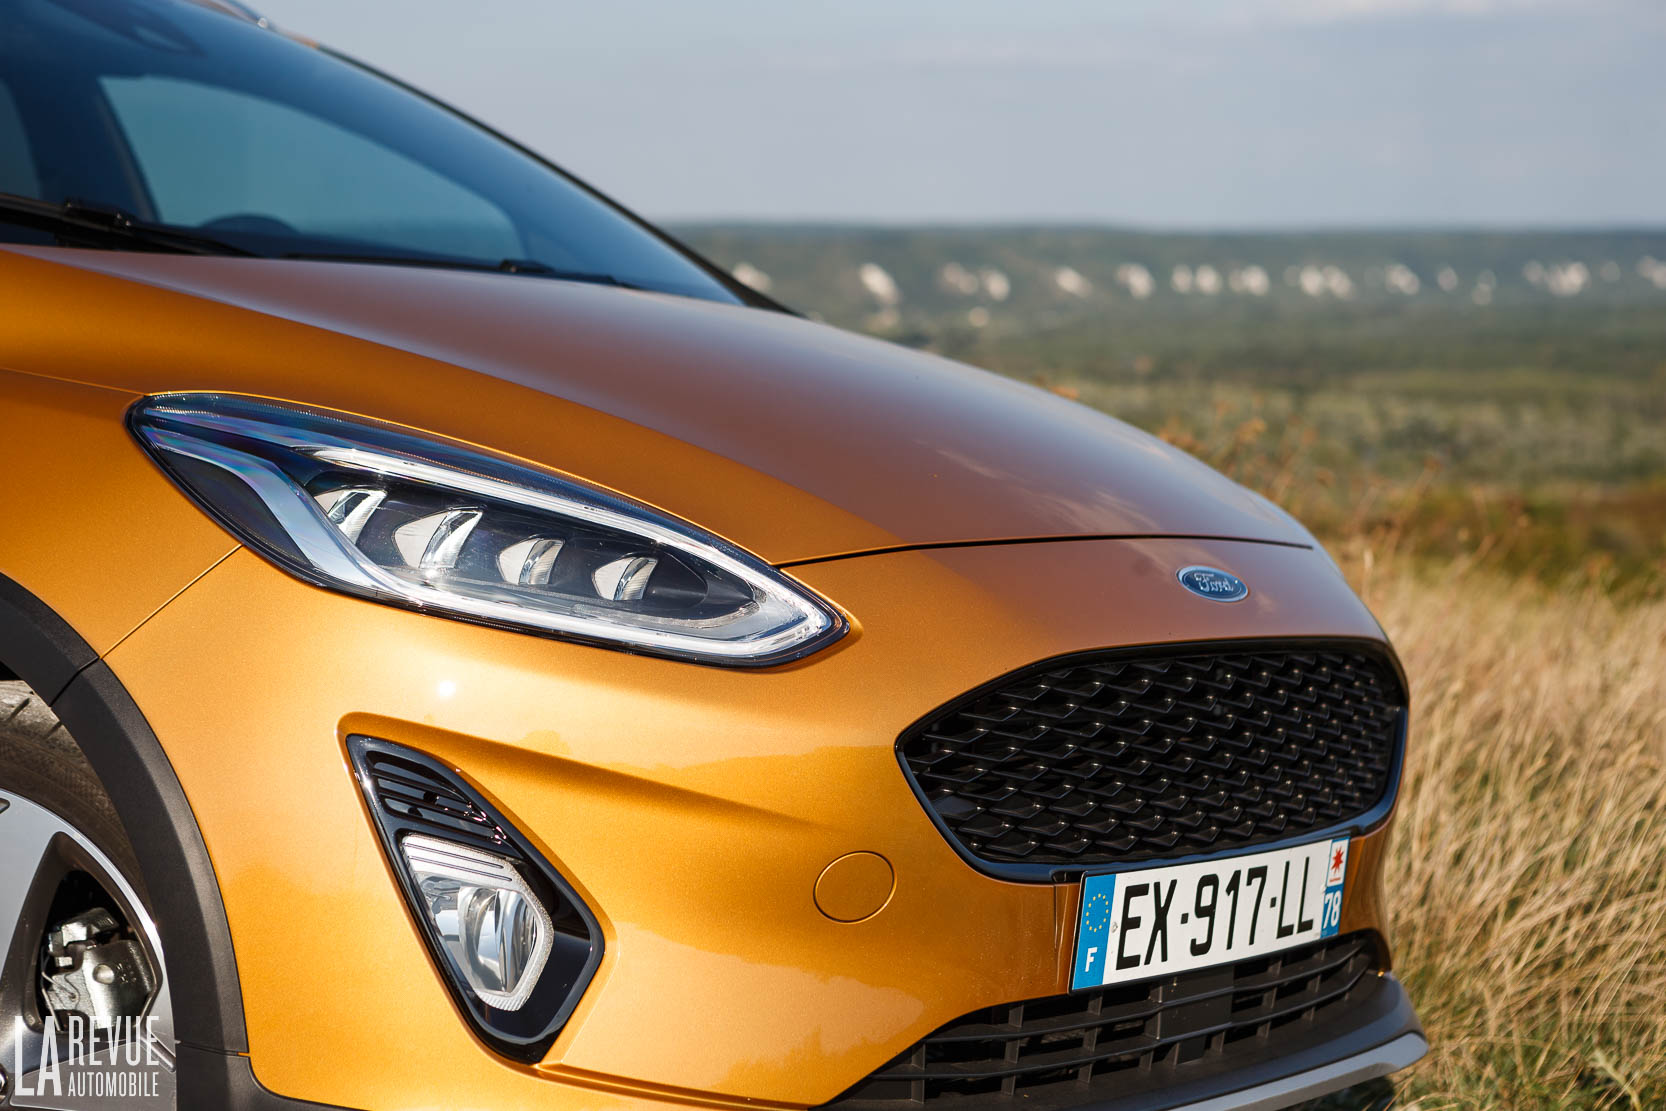 Exterieur_Ford-Fiesta-Active-SUV_22